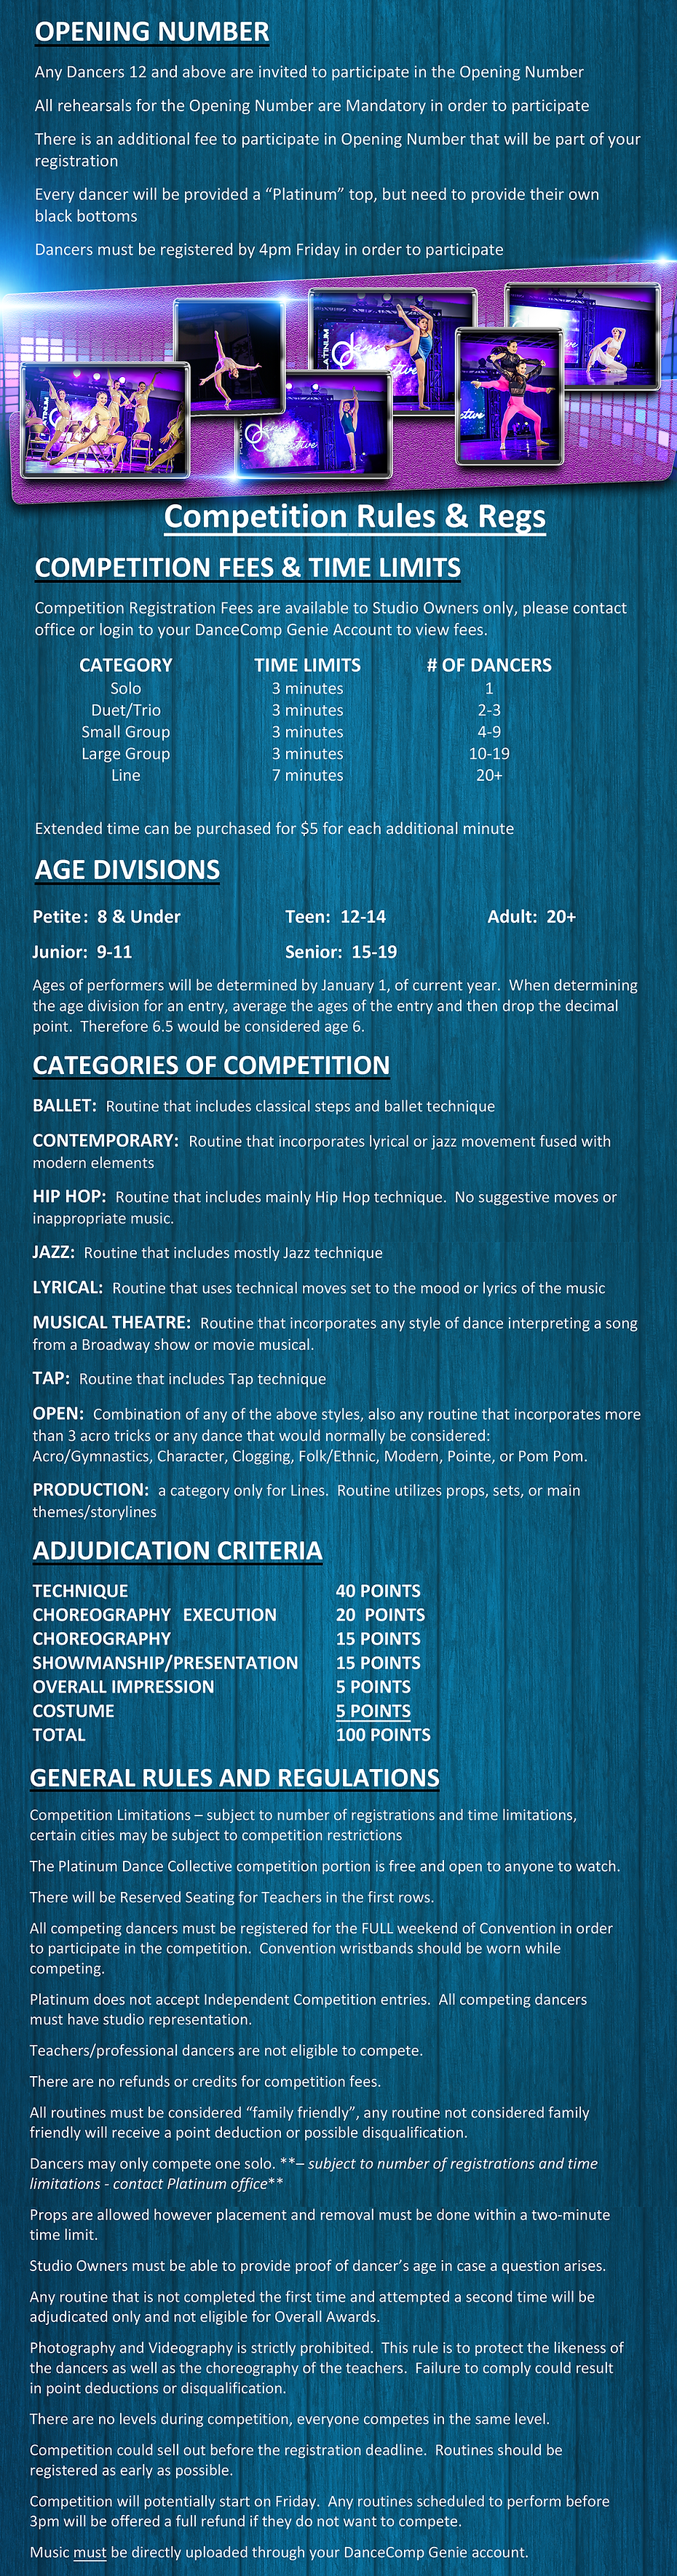 2021-22 PDC Rules & Regs for Website FINAL Approved Pg 2.png